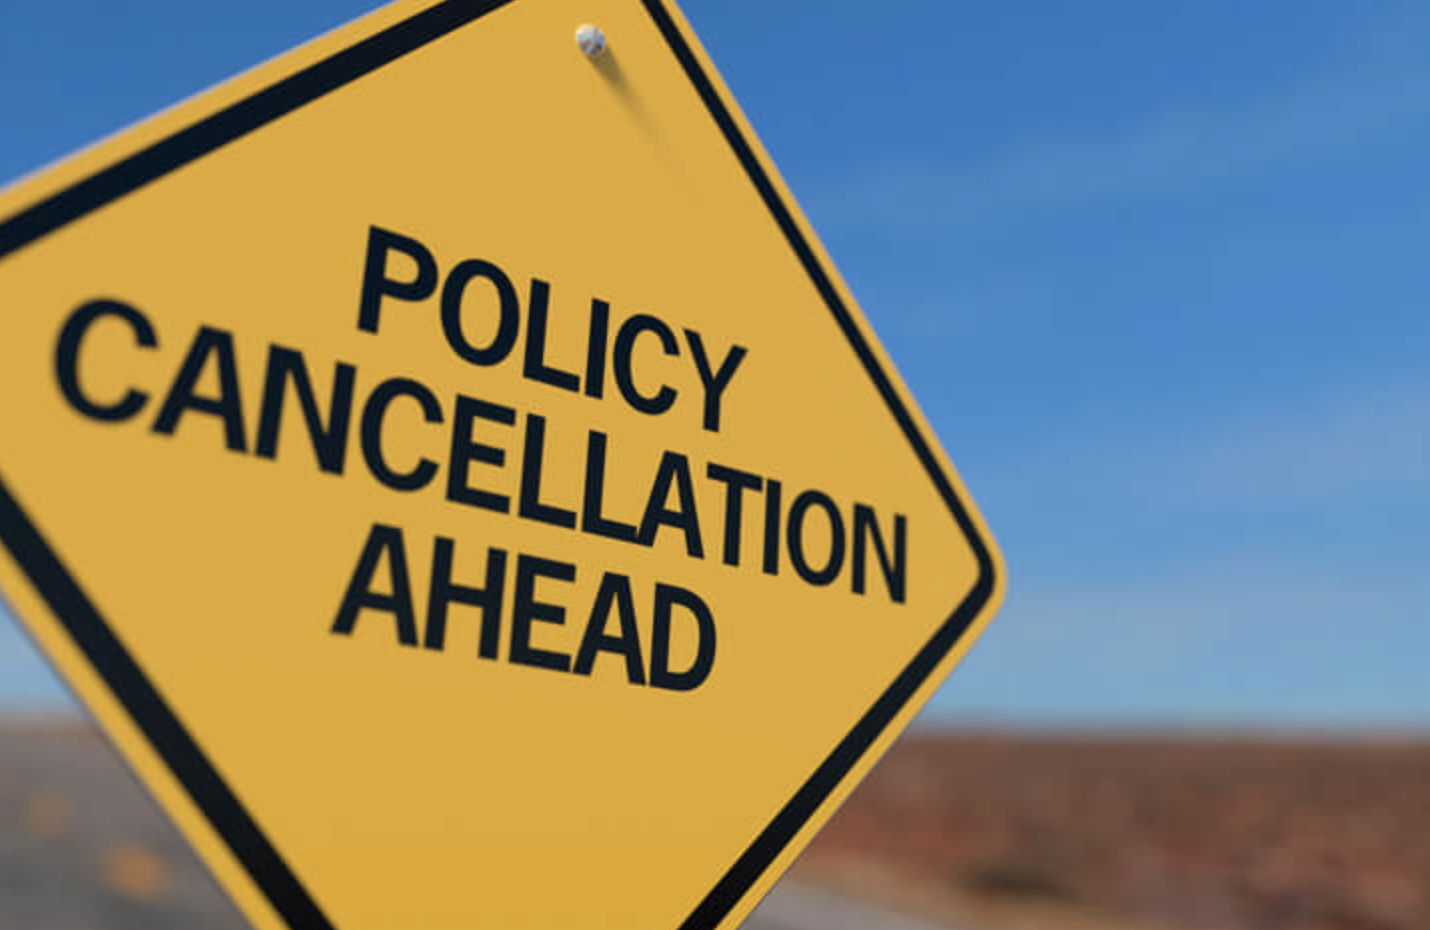 Document: Policy Cancellation Ahead